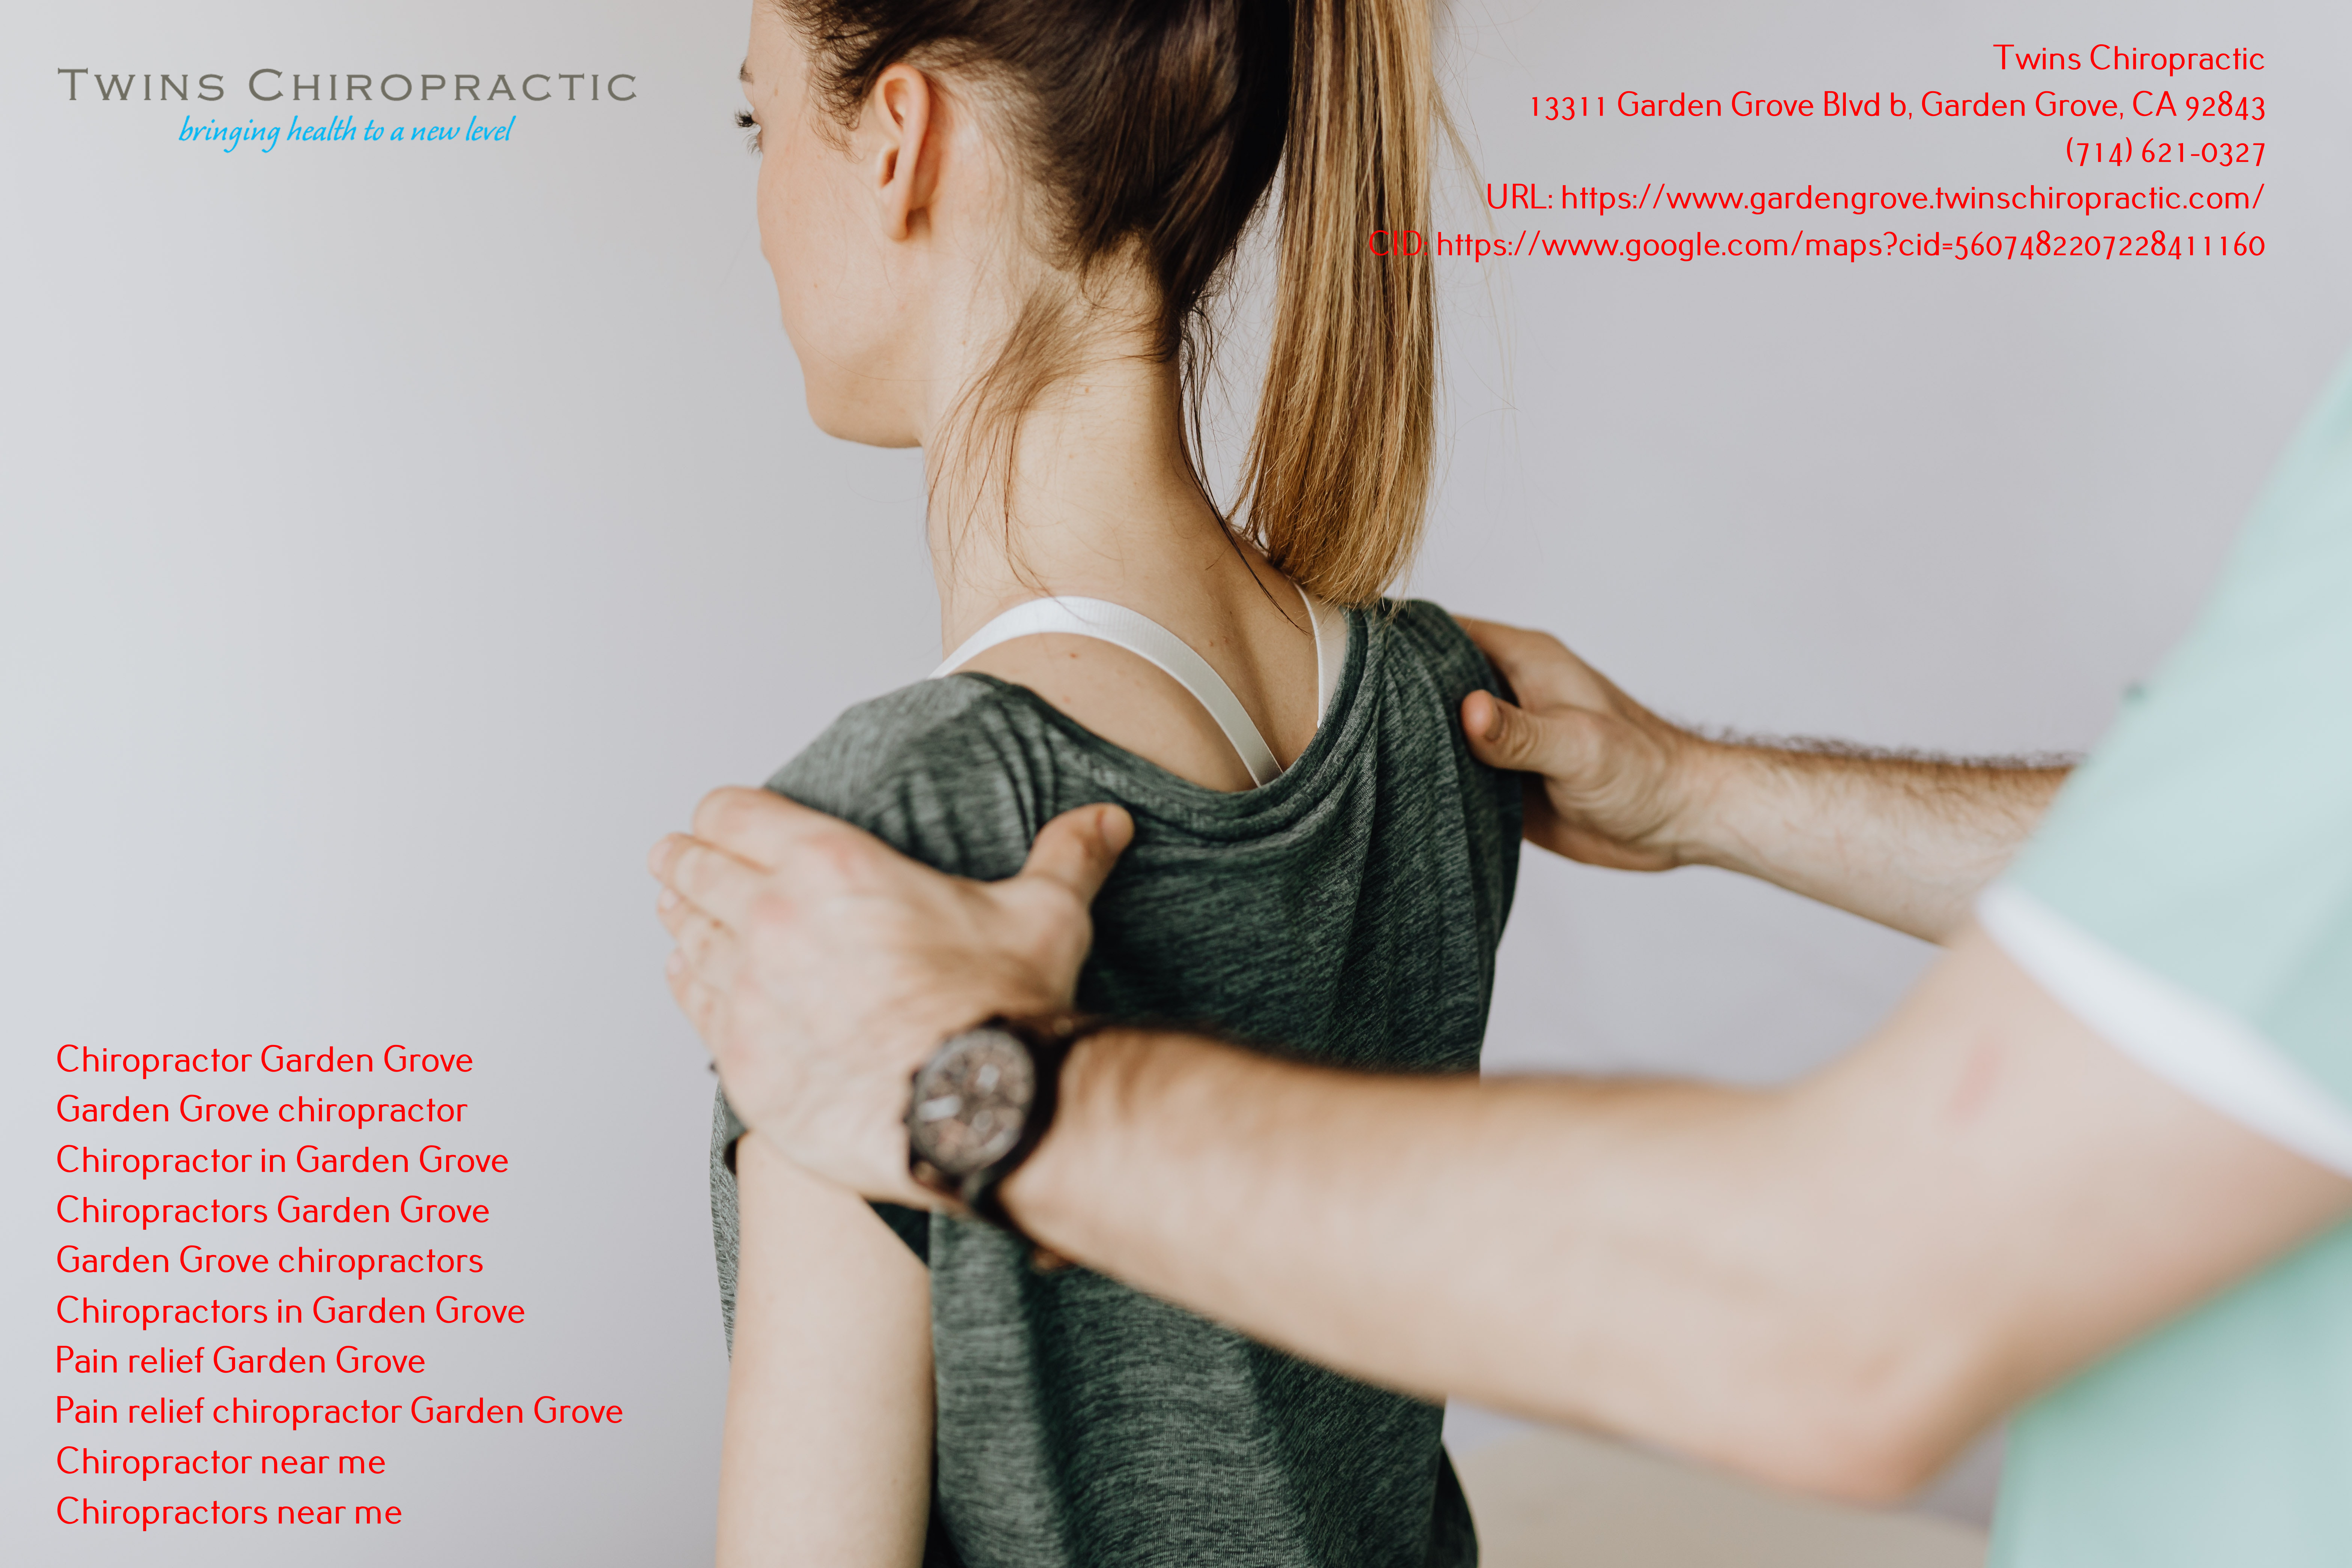 Twins Chiropractic (M2) - 4